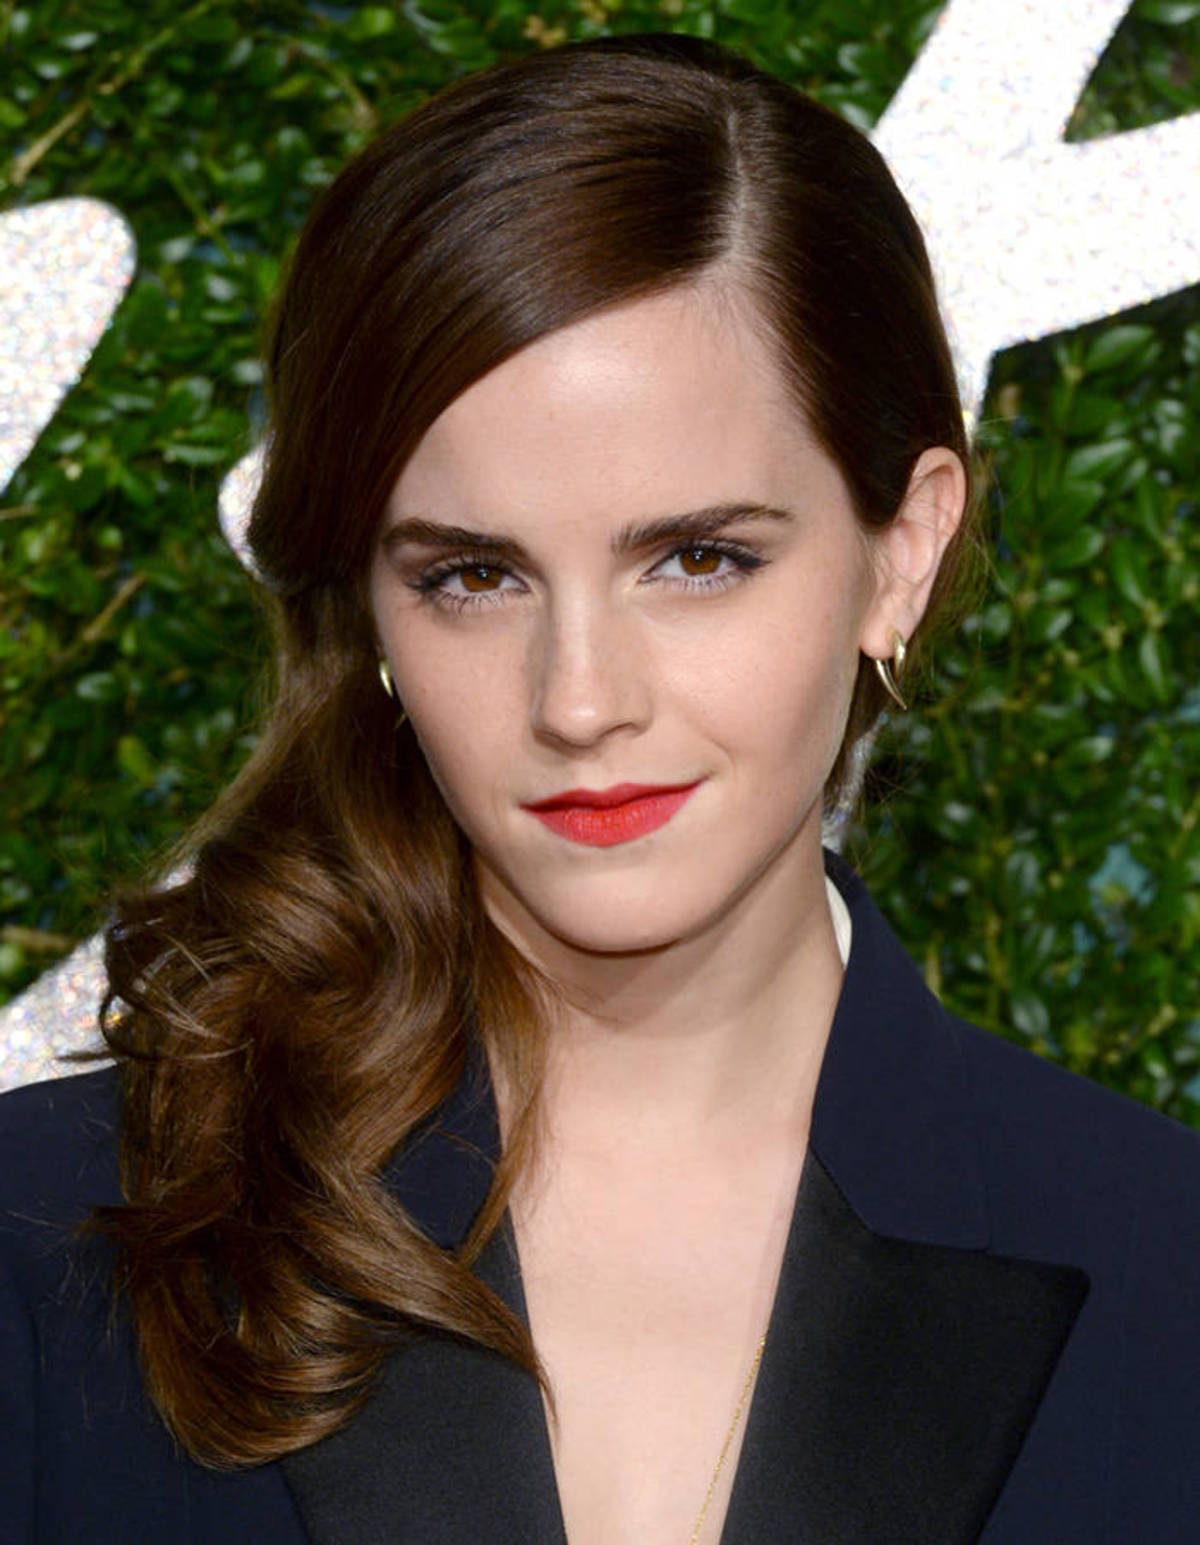 Emma-Watson-Les-actrices-a-success-gardent-figure-humaine